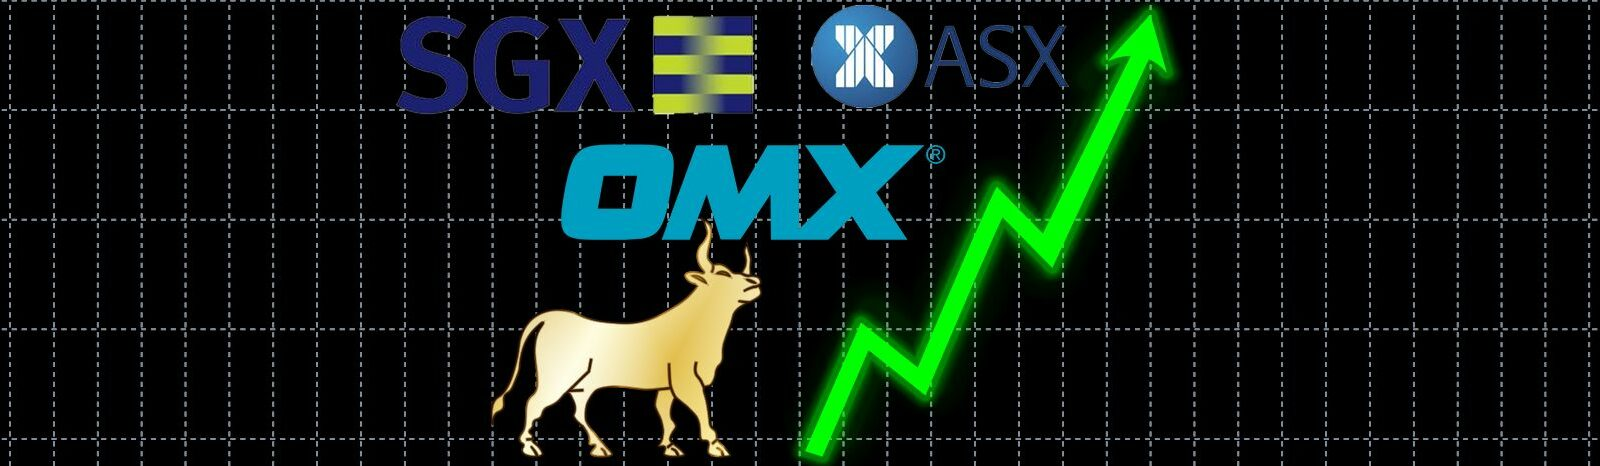 ASX, OMX, SGX and Mrs. Cohen from Singapore …